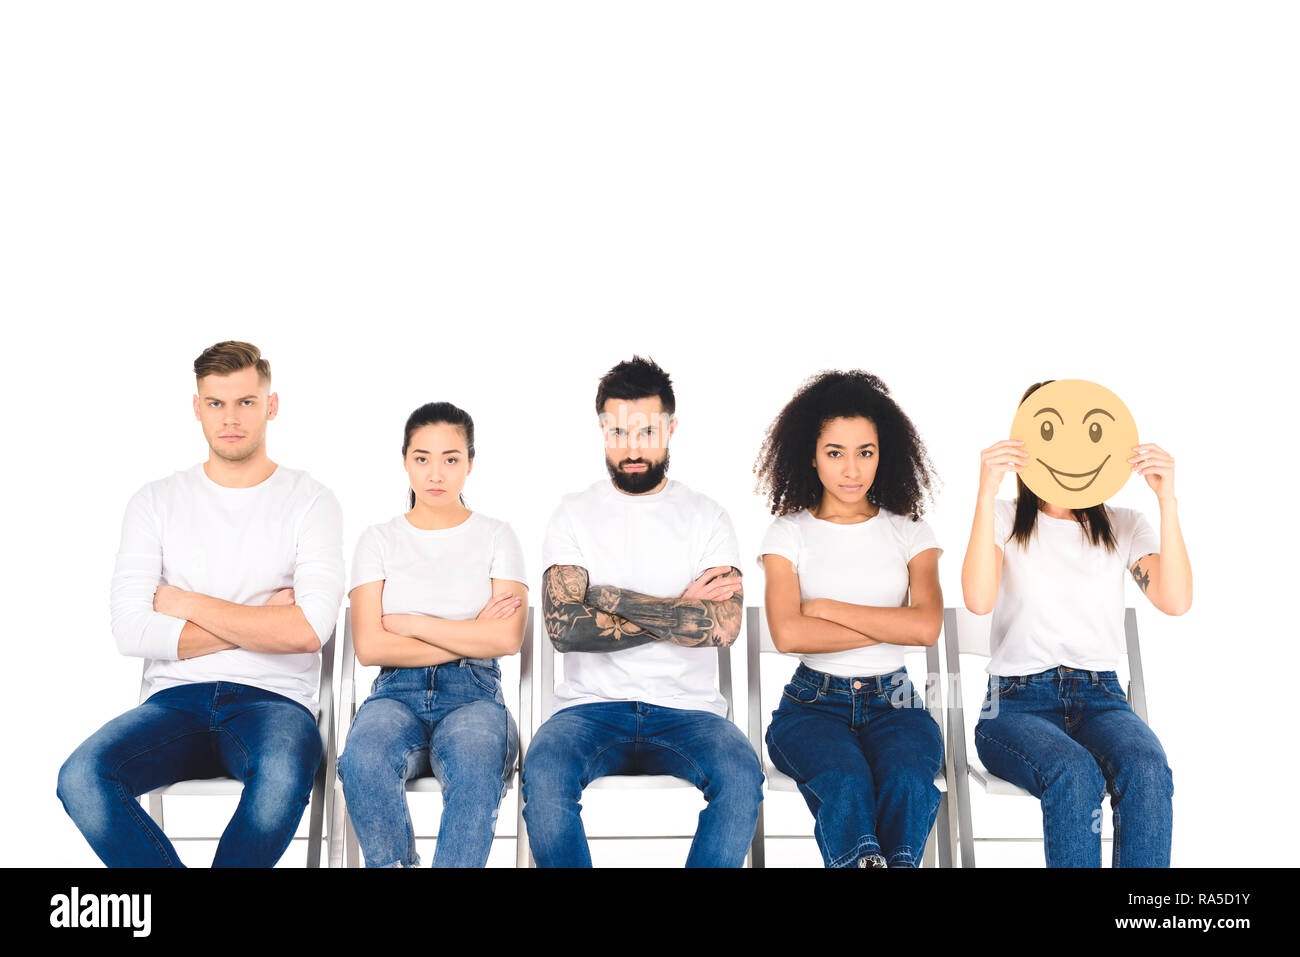 upset multicultural friends sitting on chairs with crossed arms while girl holding tricky sign isolated on white - Stock Image